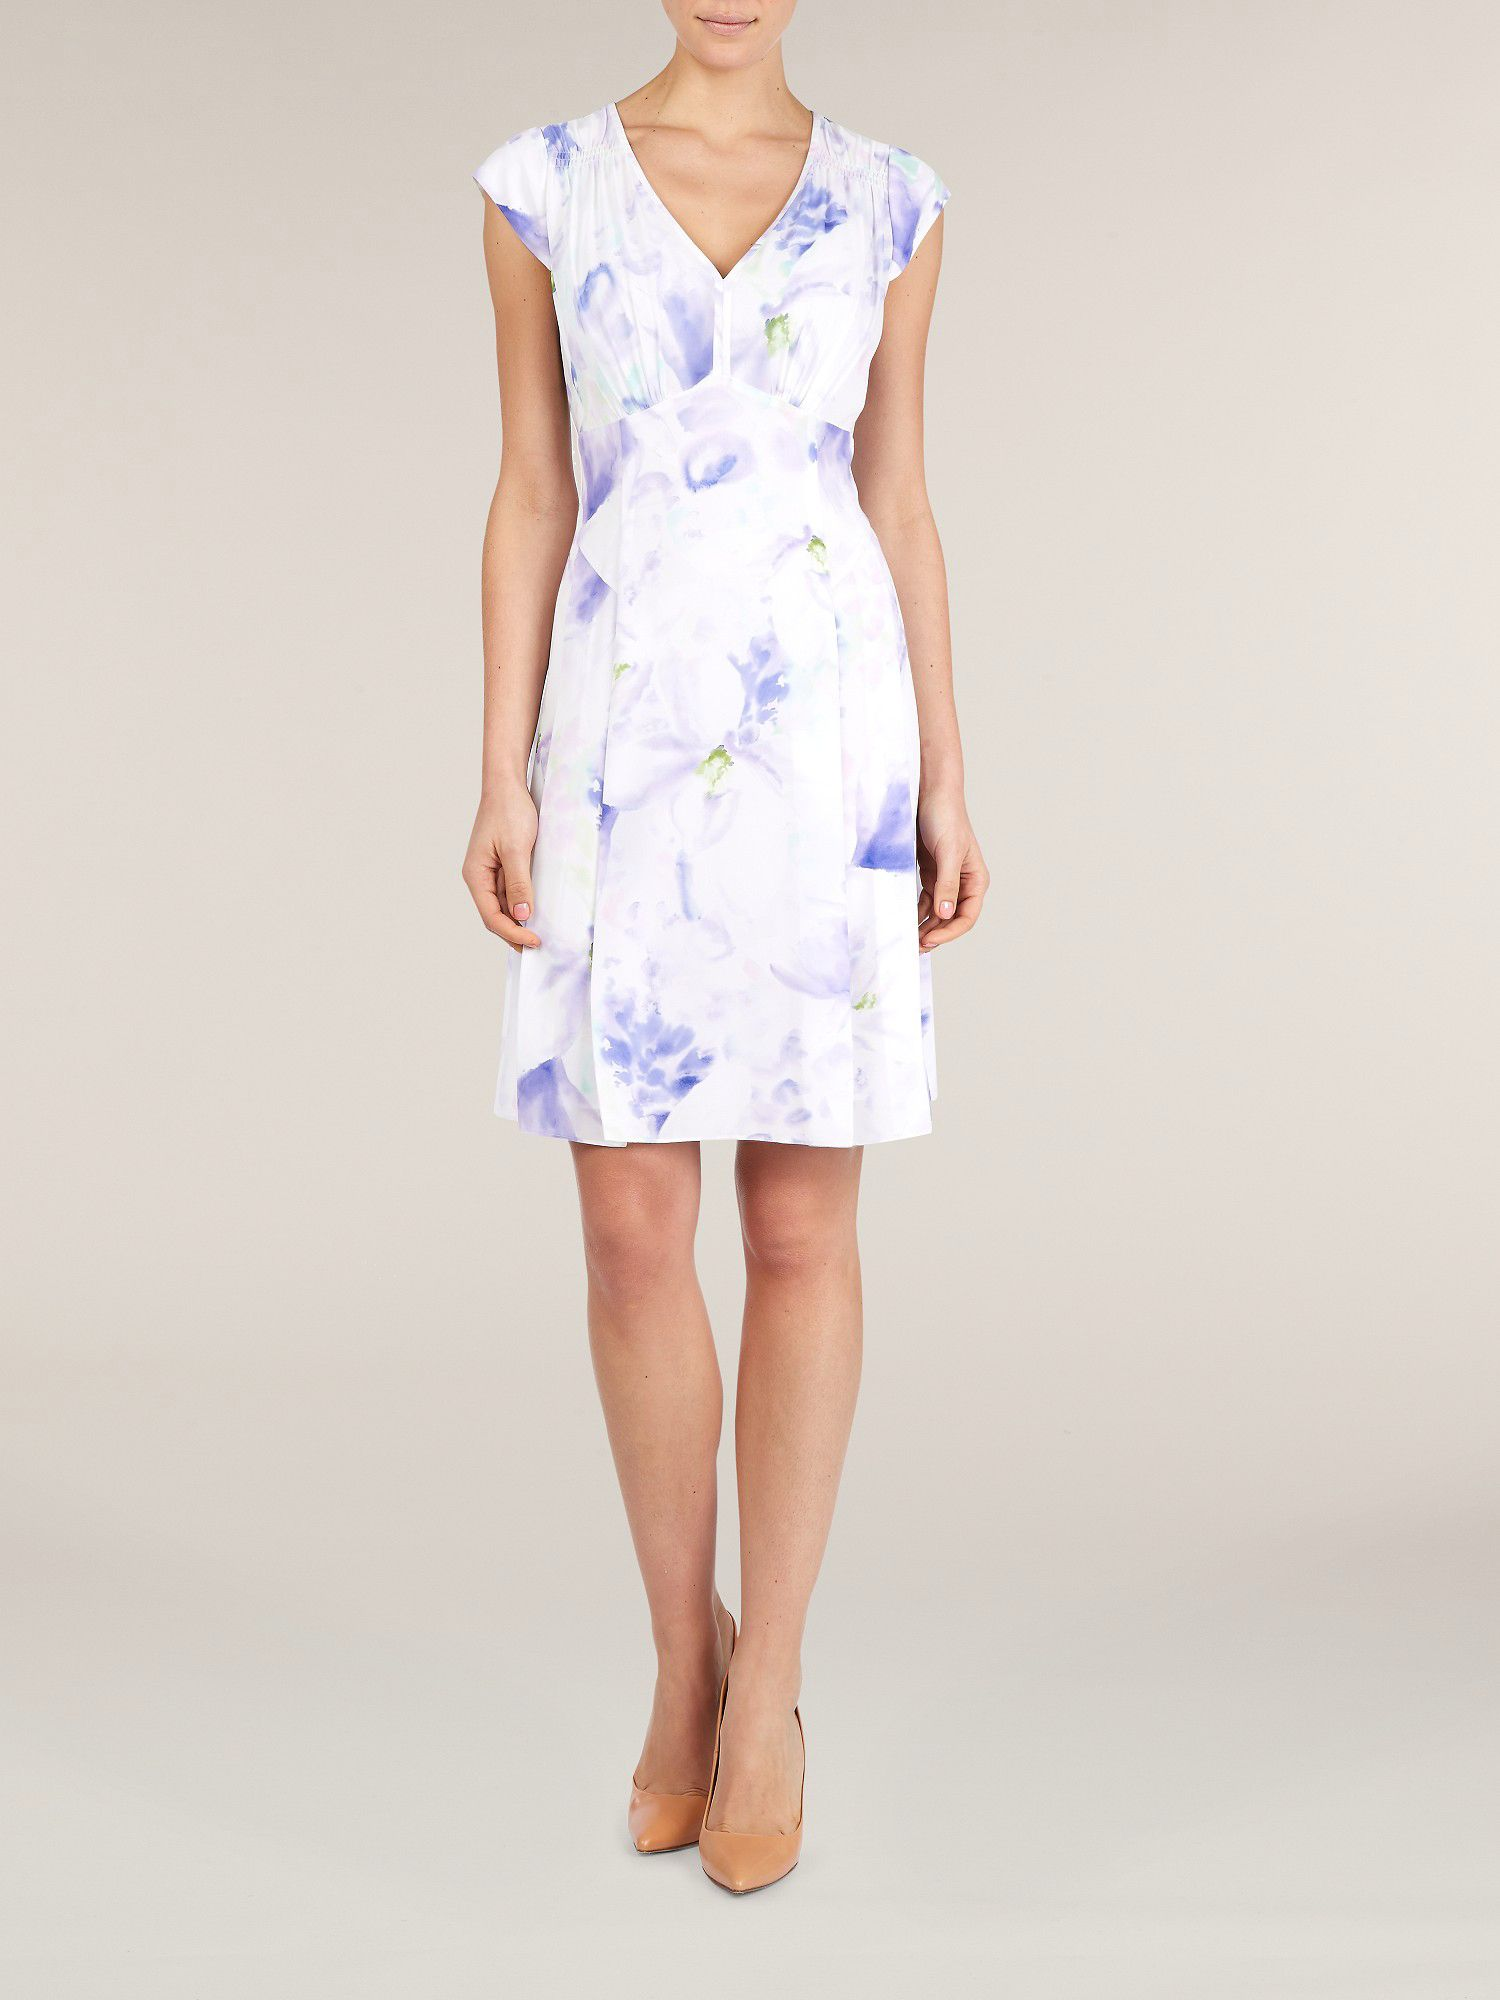 Lilac floral printed tea dress